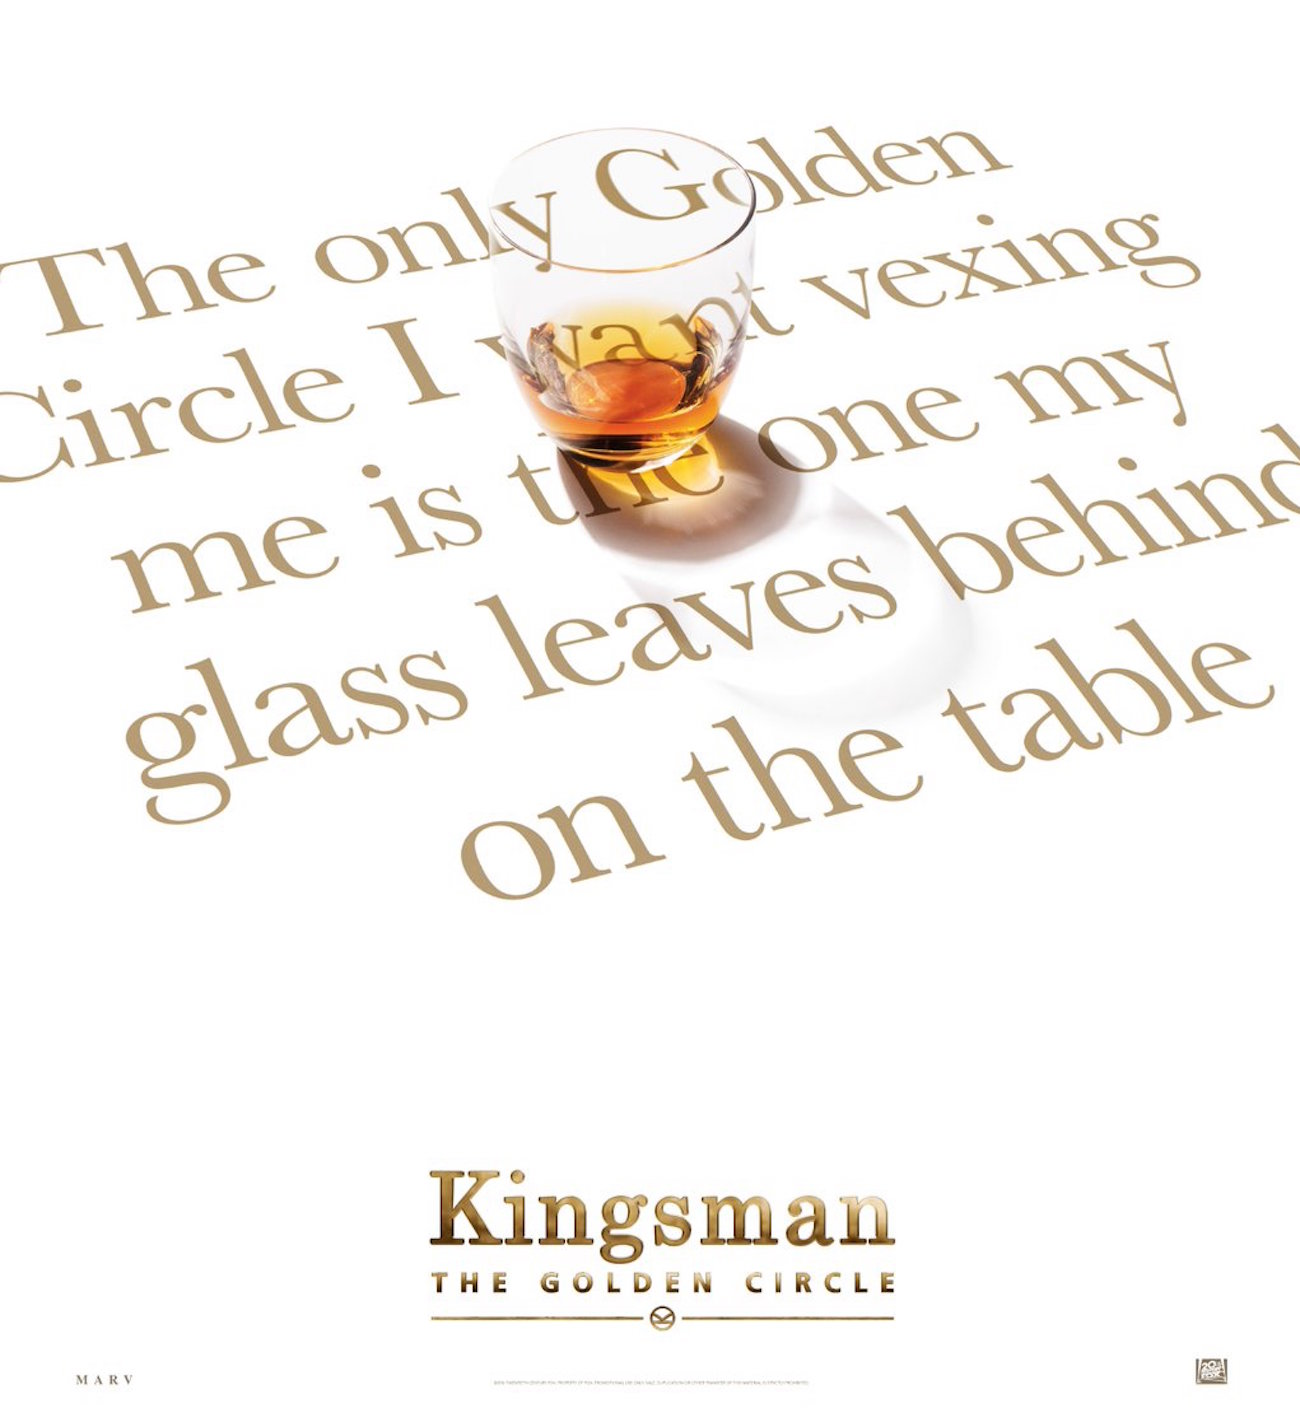 Kingsman the golden circle jeff bridges poster